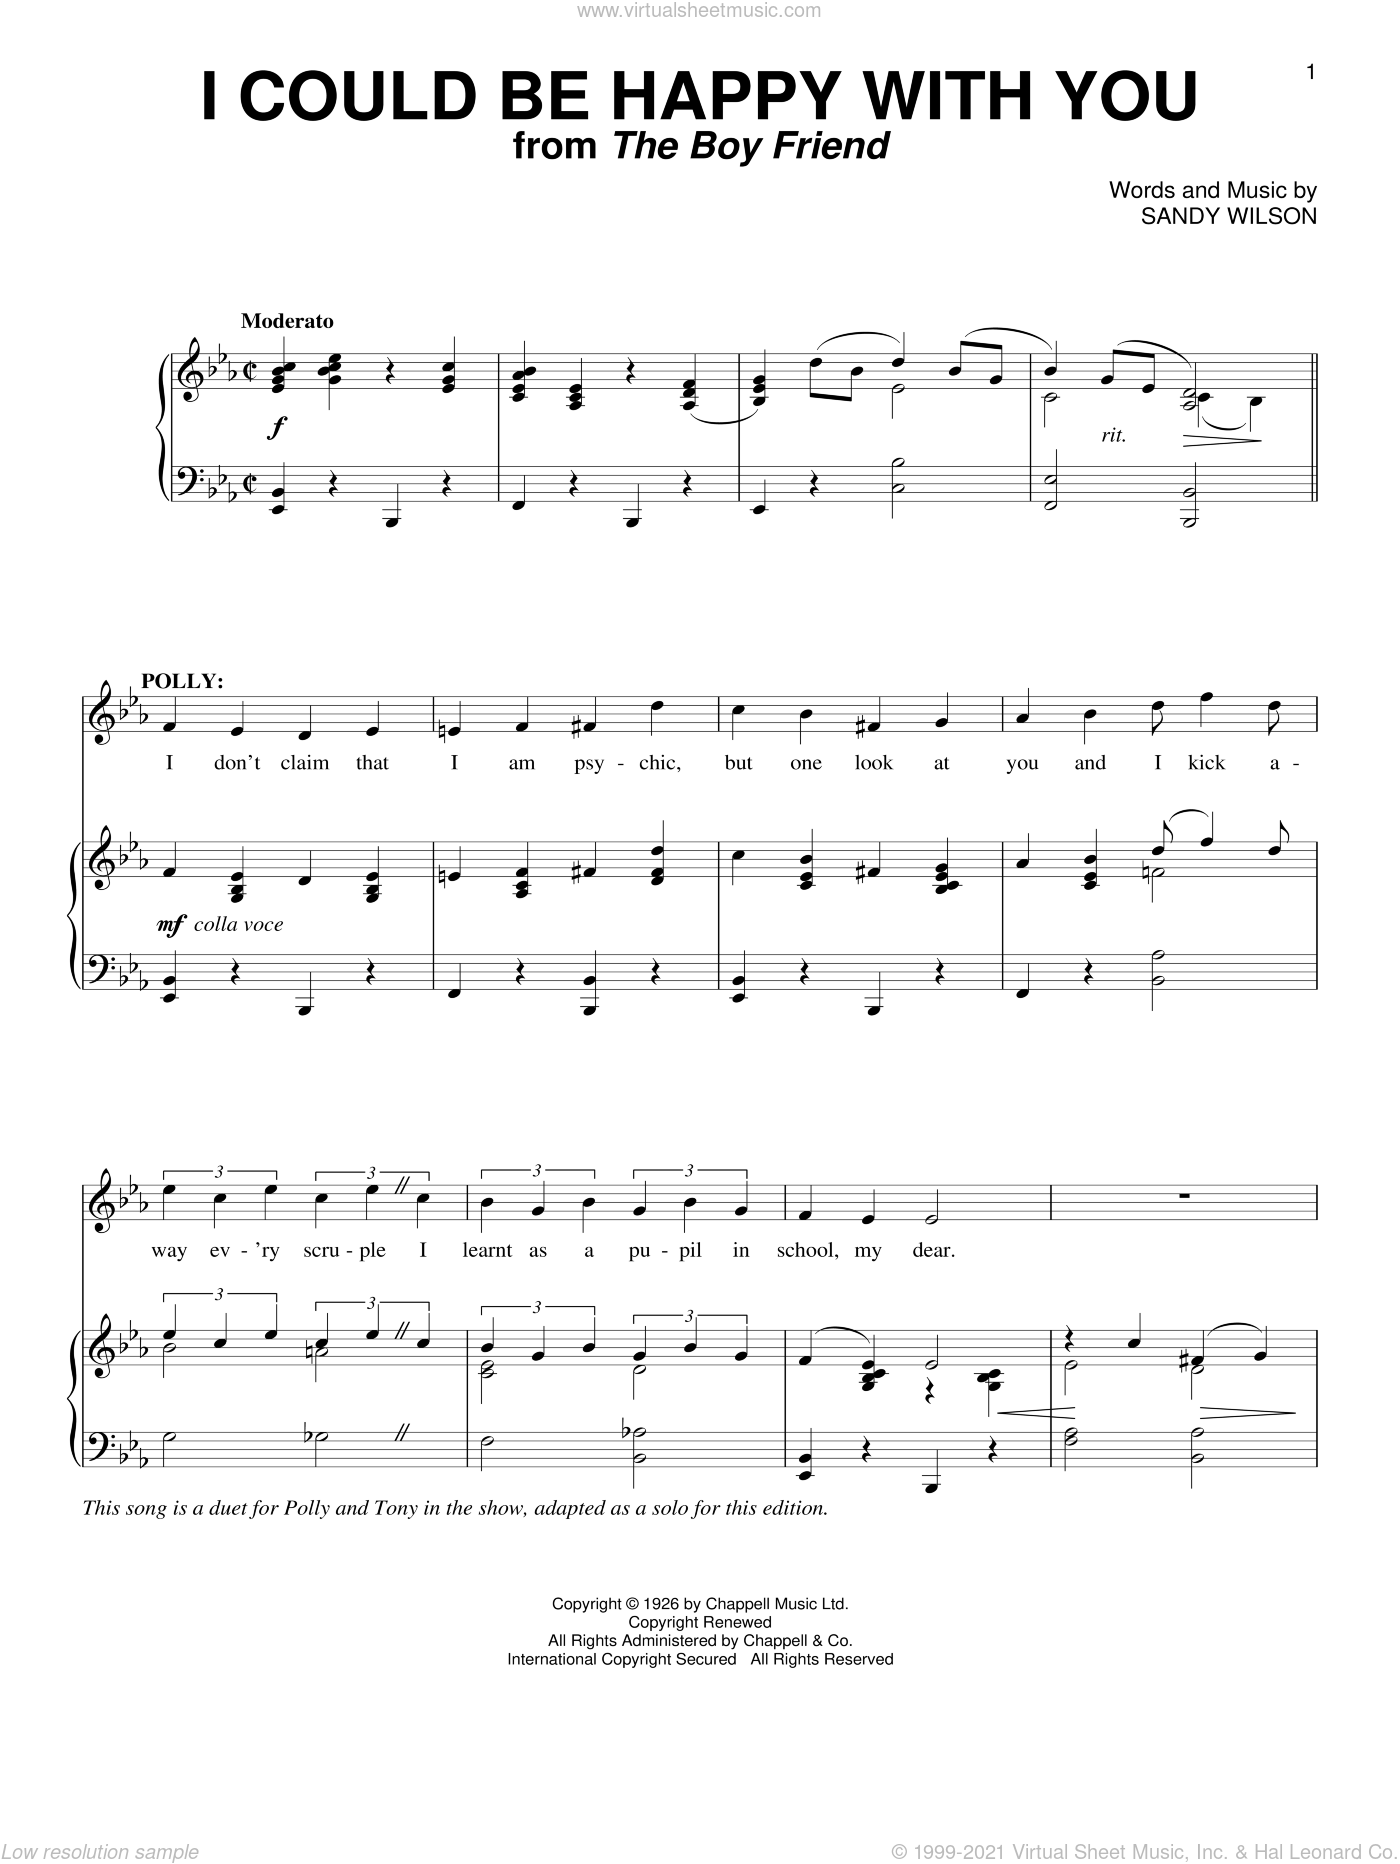 I Could Be Happy With You sheet music for voice and piano by Sandy Wilson